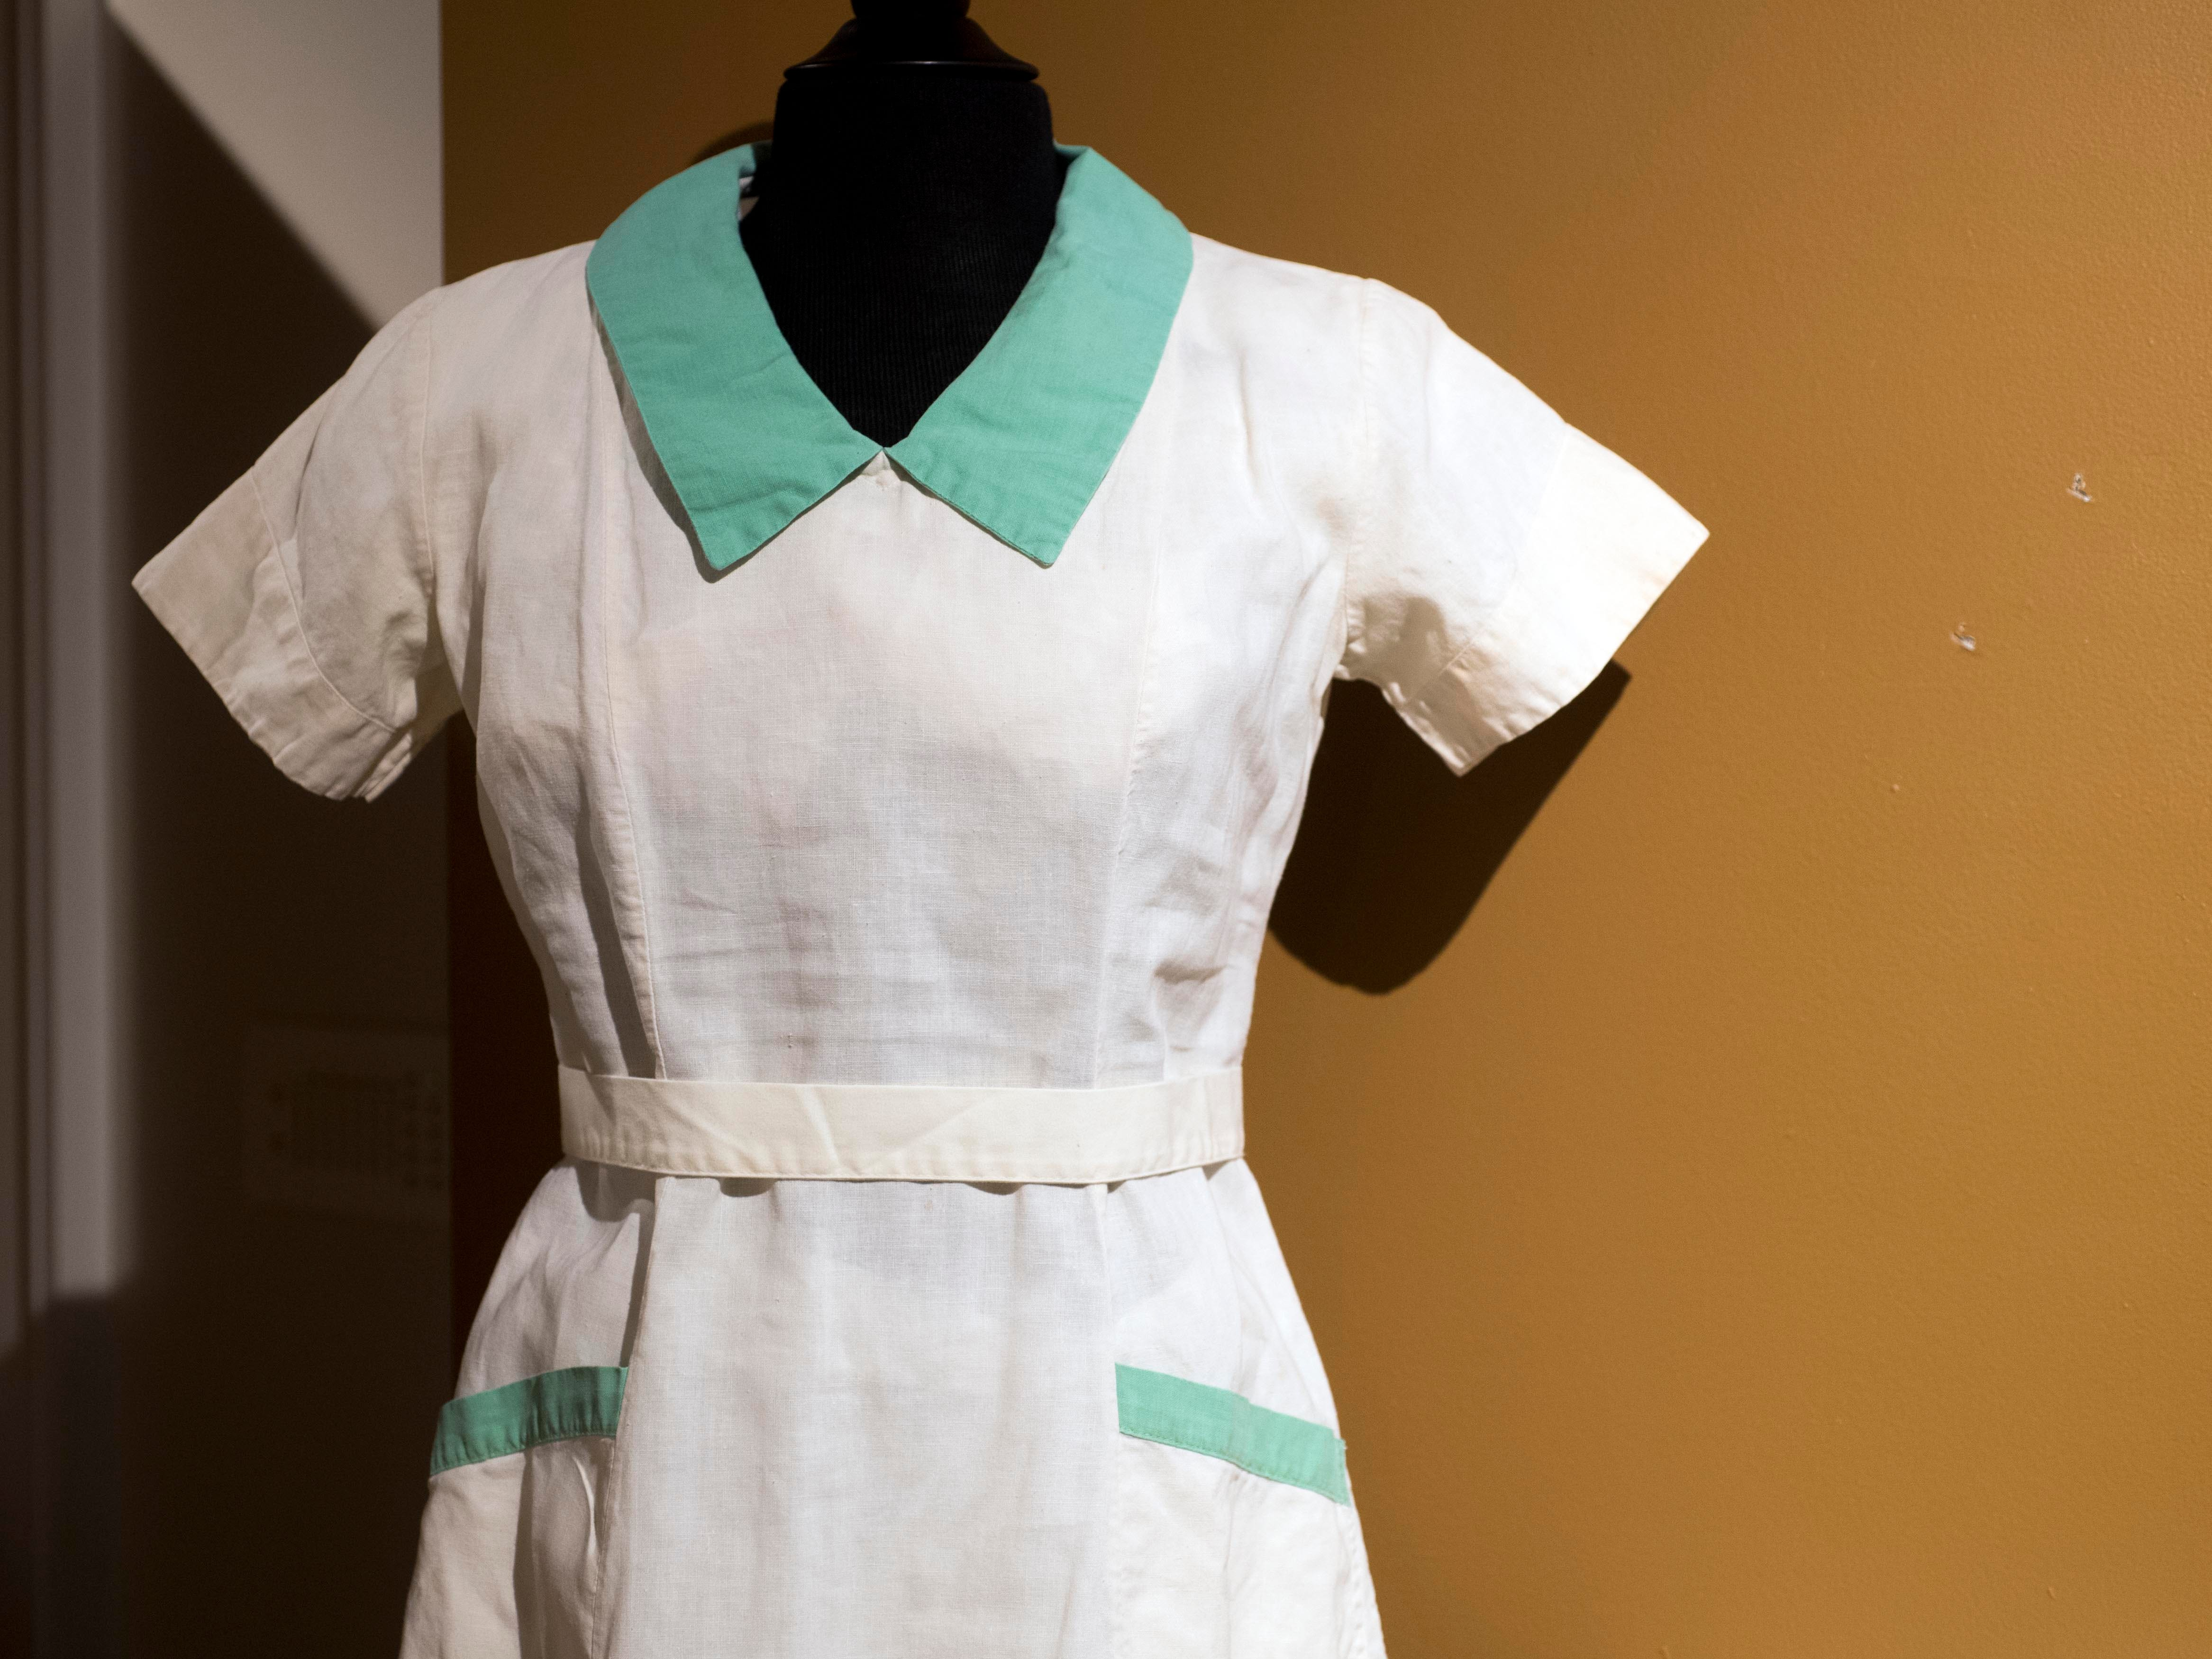 This white with green trim uniform was worn by Ethel Byerley when she worked as a supervisor at Standard Knitting Mill. The mill was founded in 1900 with 50 employees and grew to more than 4,000 three decades later. Byerley supervised 40 workers who worn green dresses with white trim. The uniform is from the 1950s-60s.